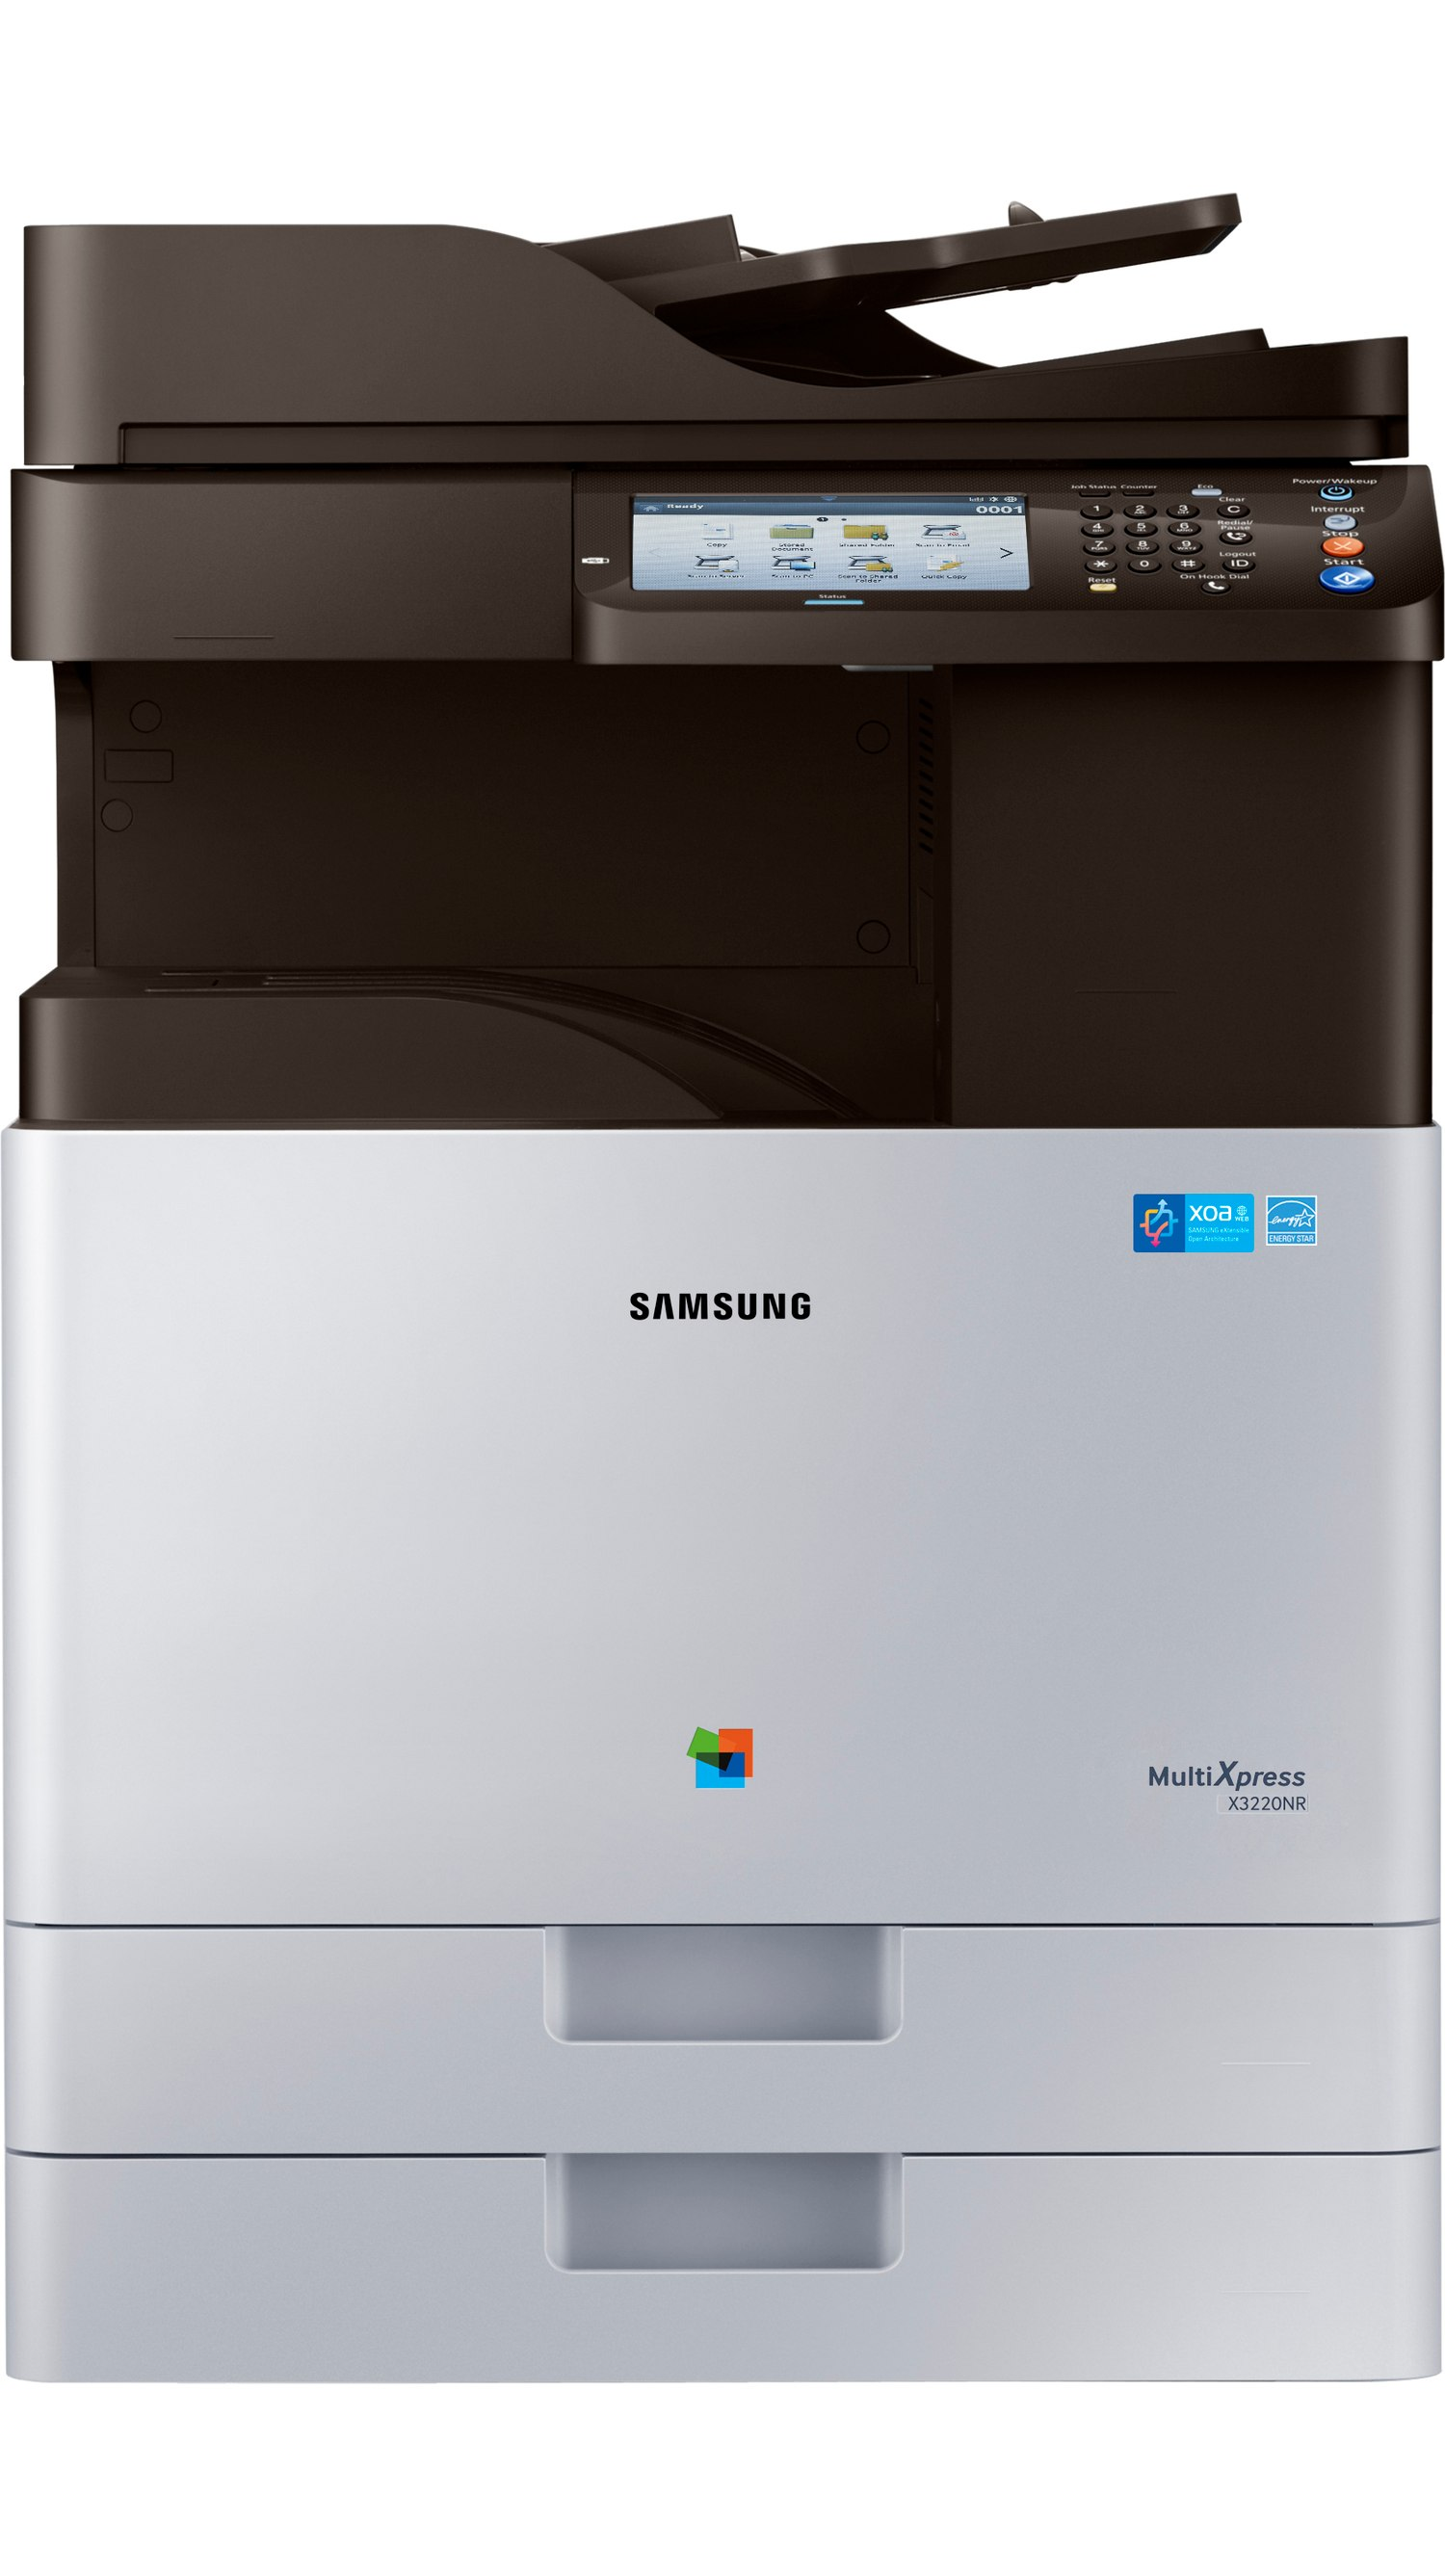 Samsung MultiXpress SL-X3220NR Toner Cartridges